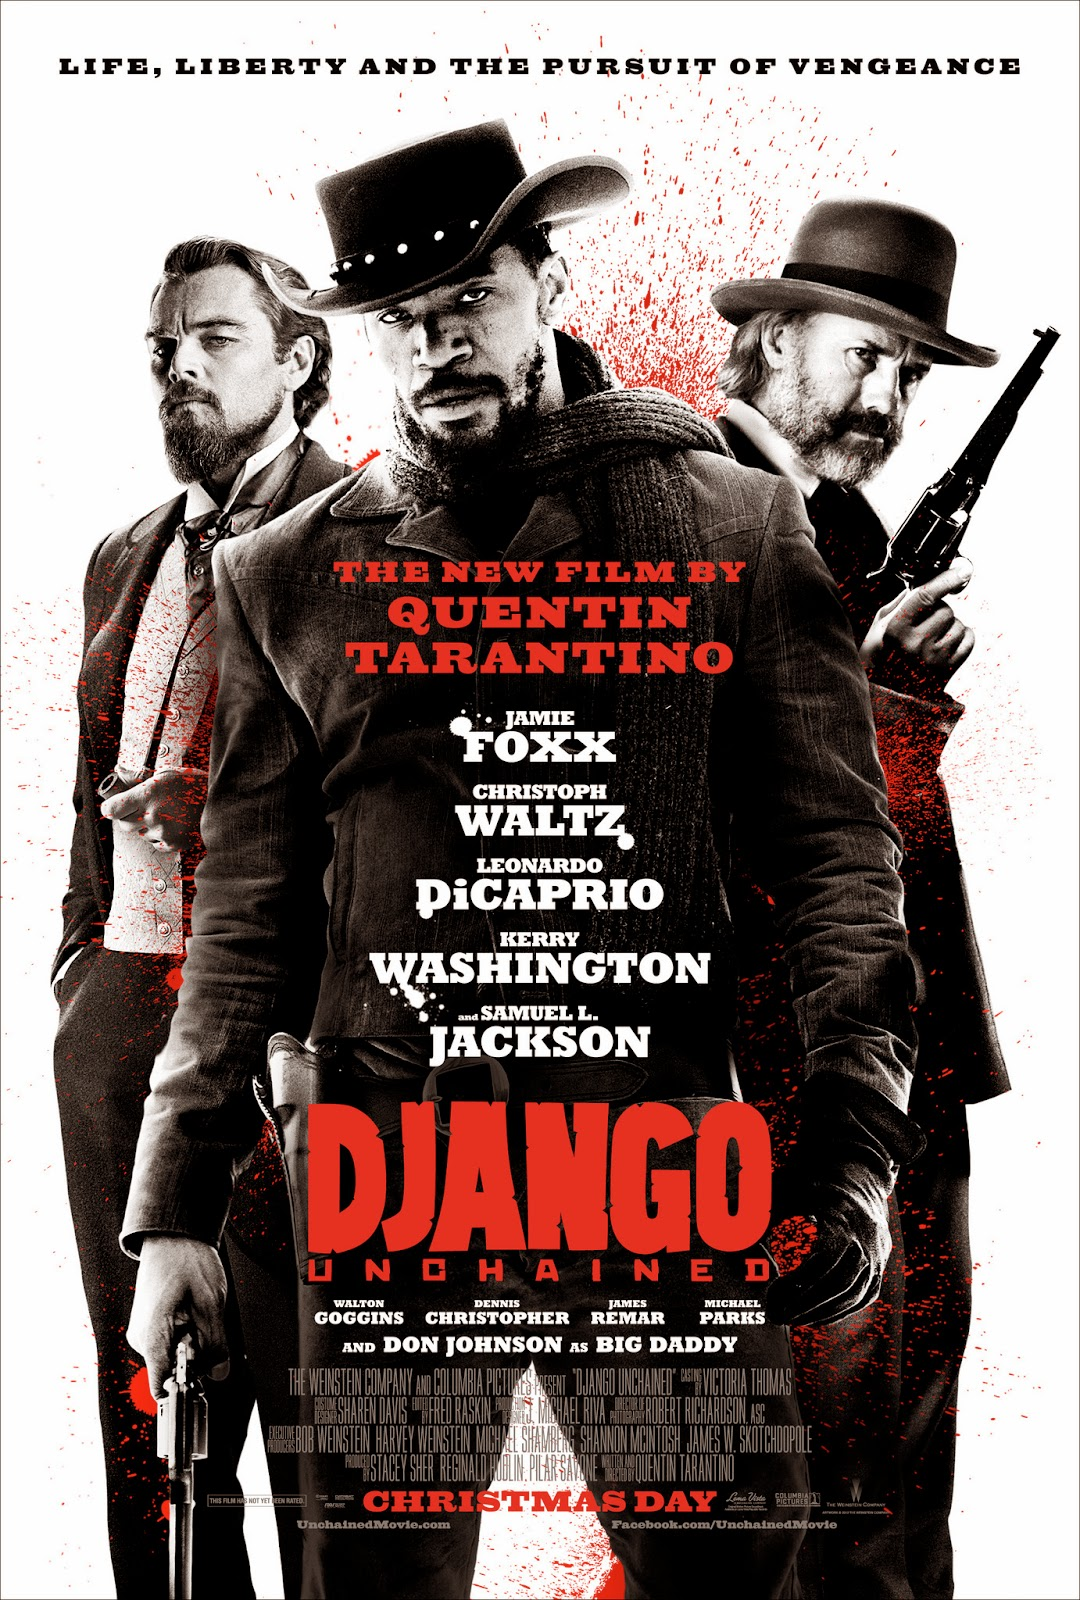 Django Unchained — 5 out of 5 stars